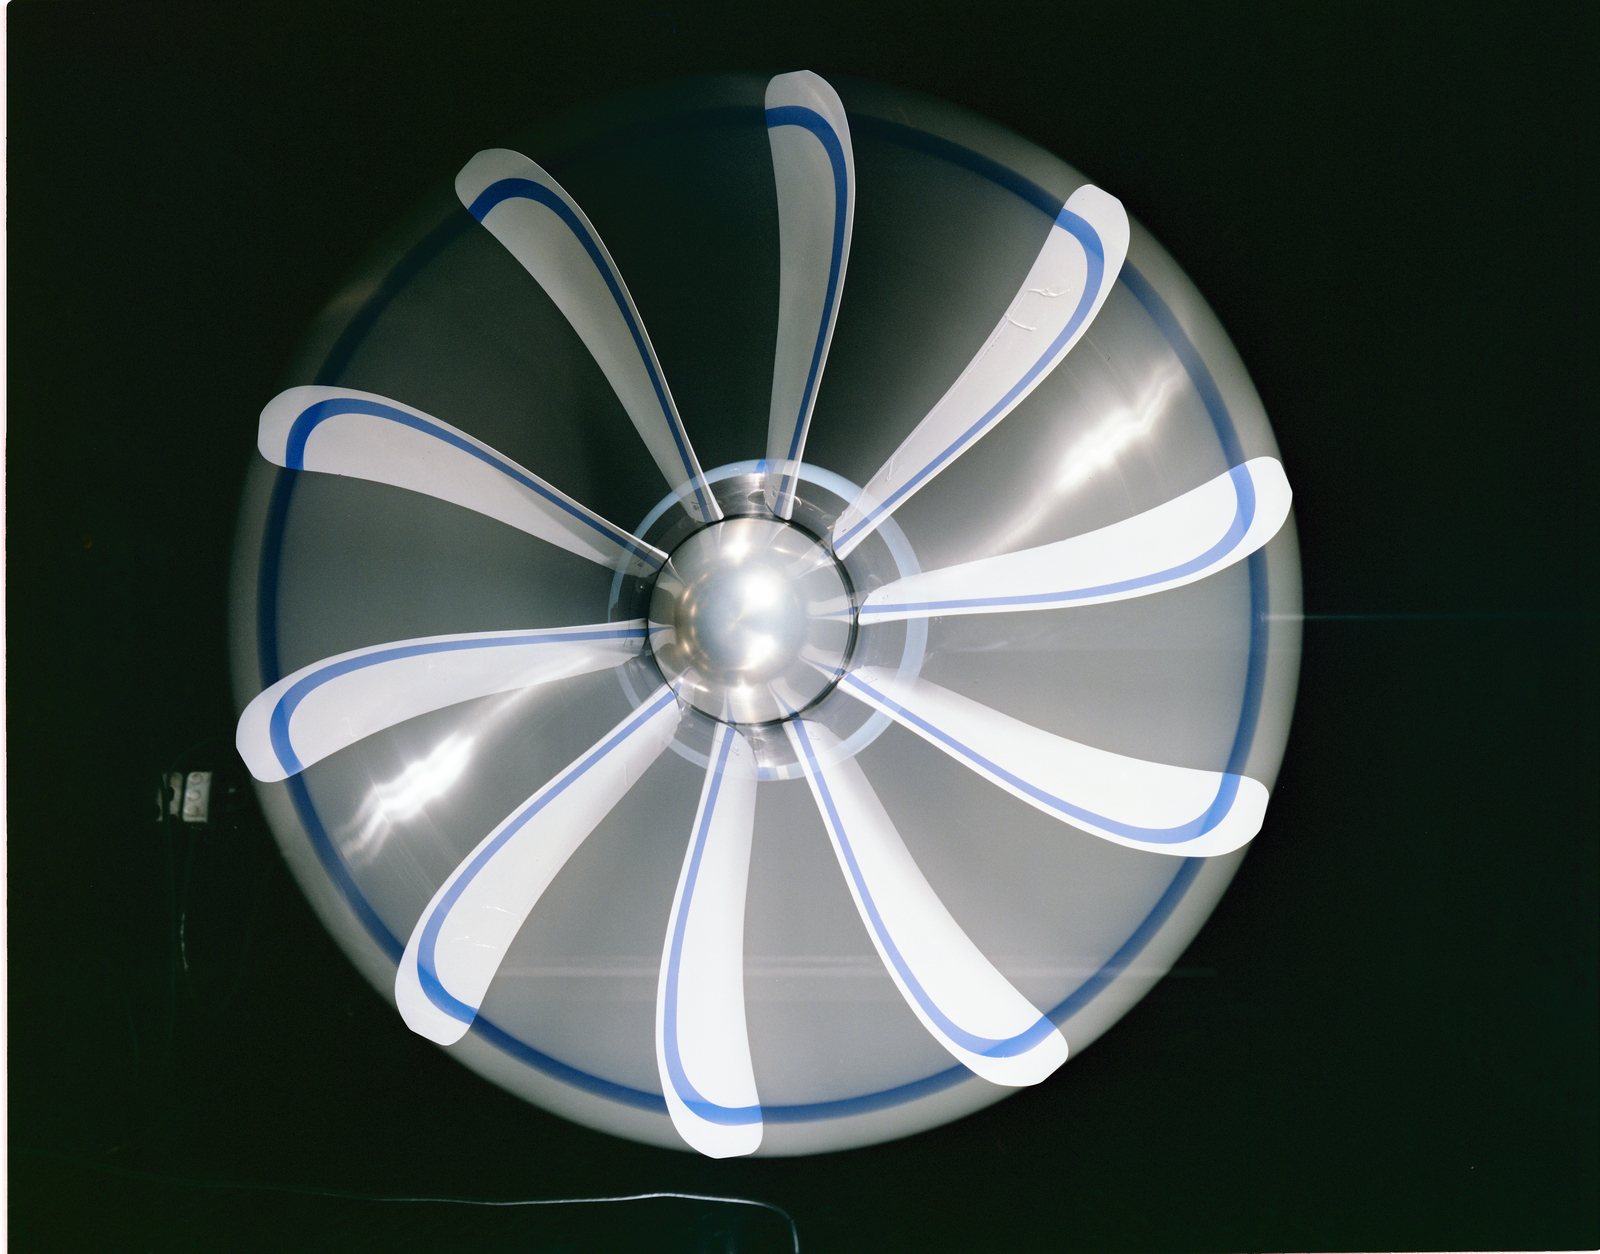 SR6 Advanced Turboprop (Propfan) Mounted on the PTR in the 8x6 foot Supersonic Wind Tunnel (SWT)